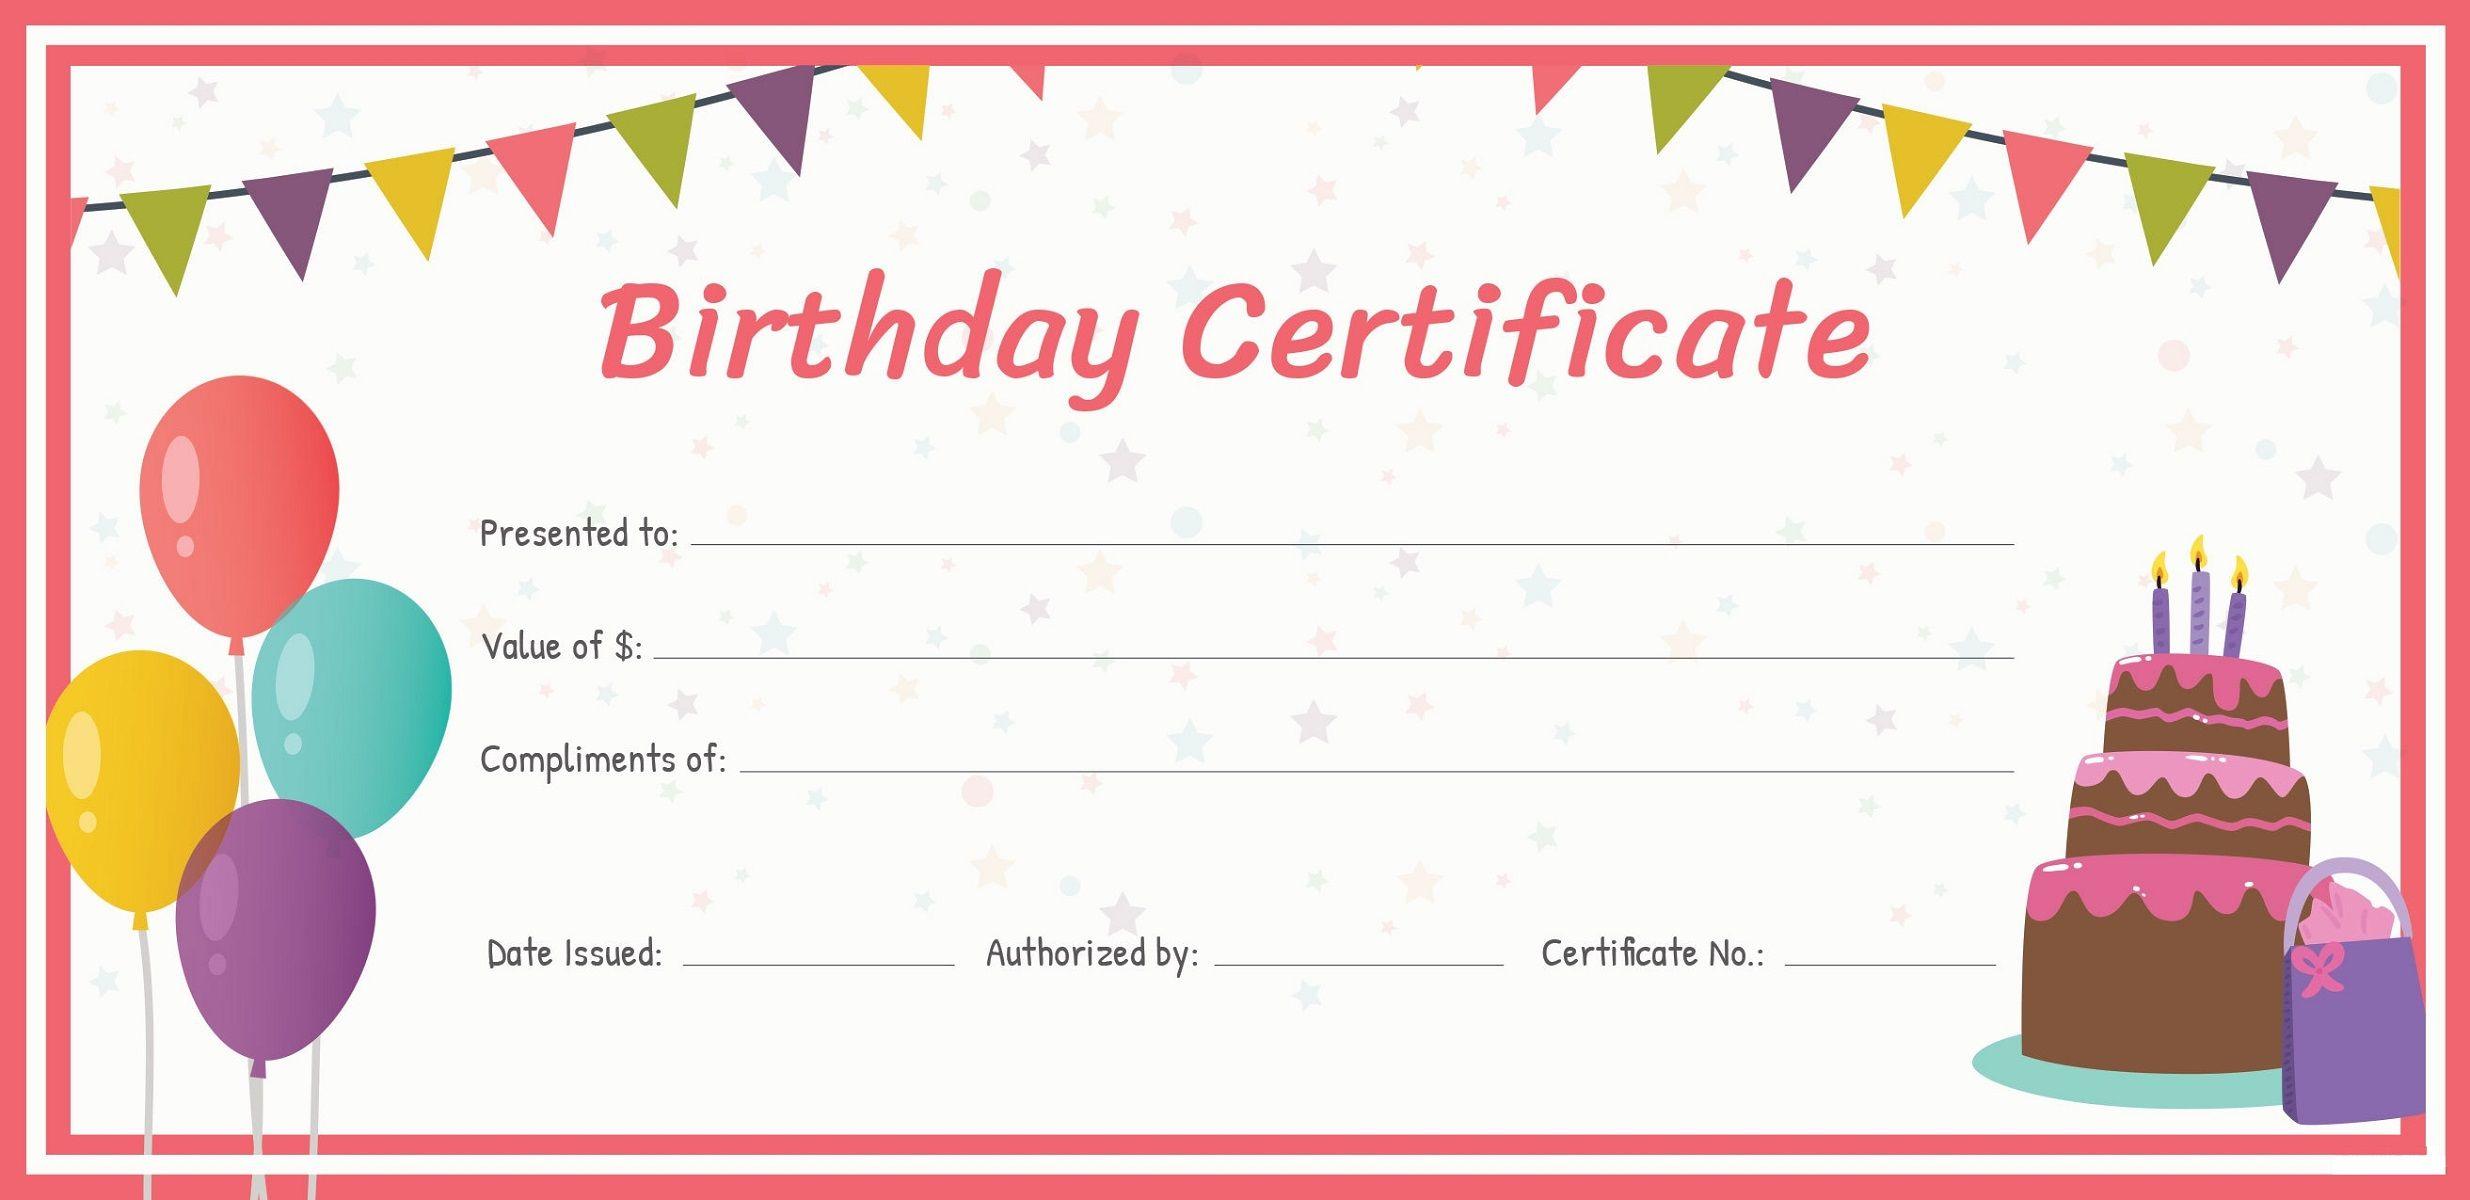 Gift Certificate Templates To Print For Free Free Gift Certificate Template Gift Certificate Template Word Gift Certificate Template